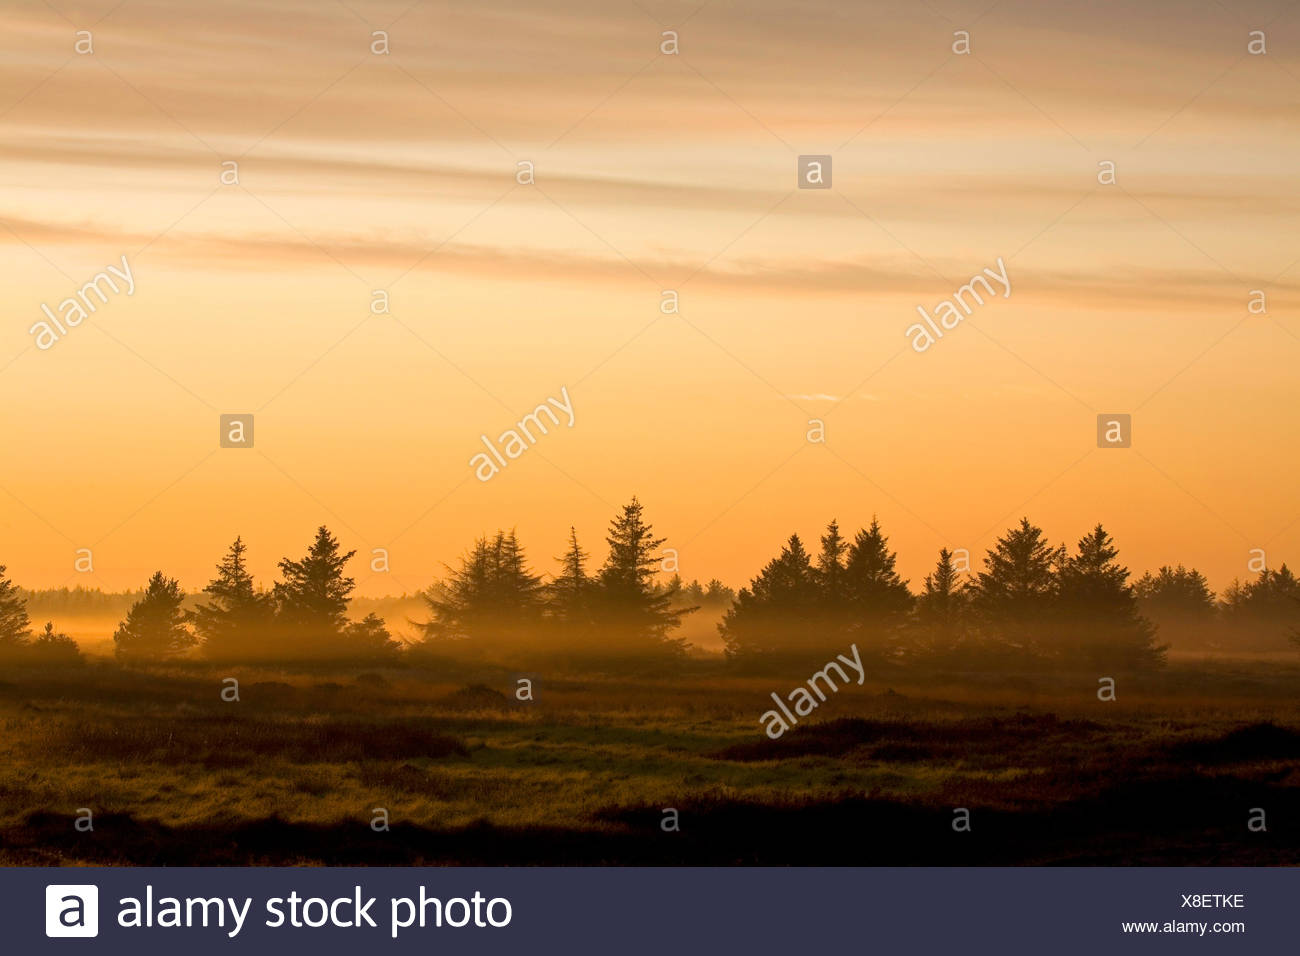 Norway spruce (Picea abies), Norway spruces in morning light, Denmark, Midtjylland, Jylland - Stock Image